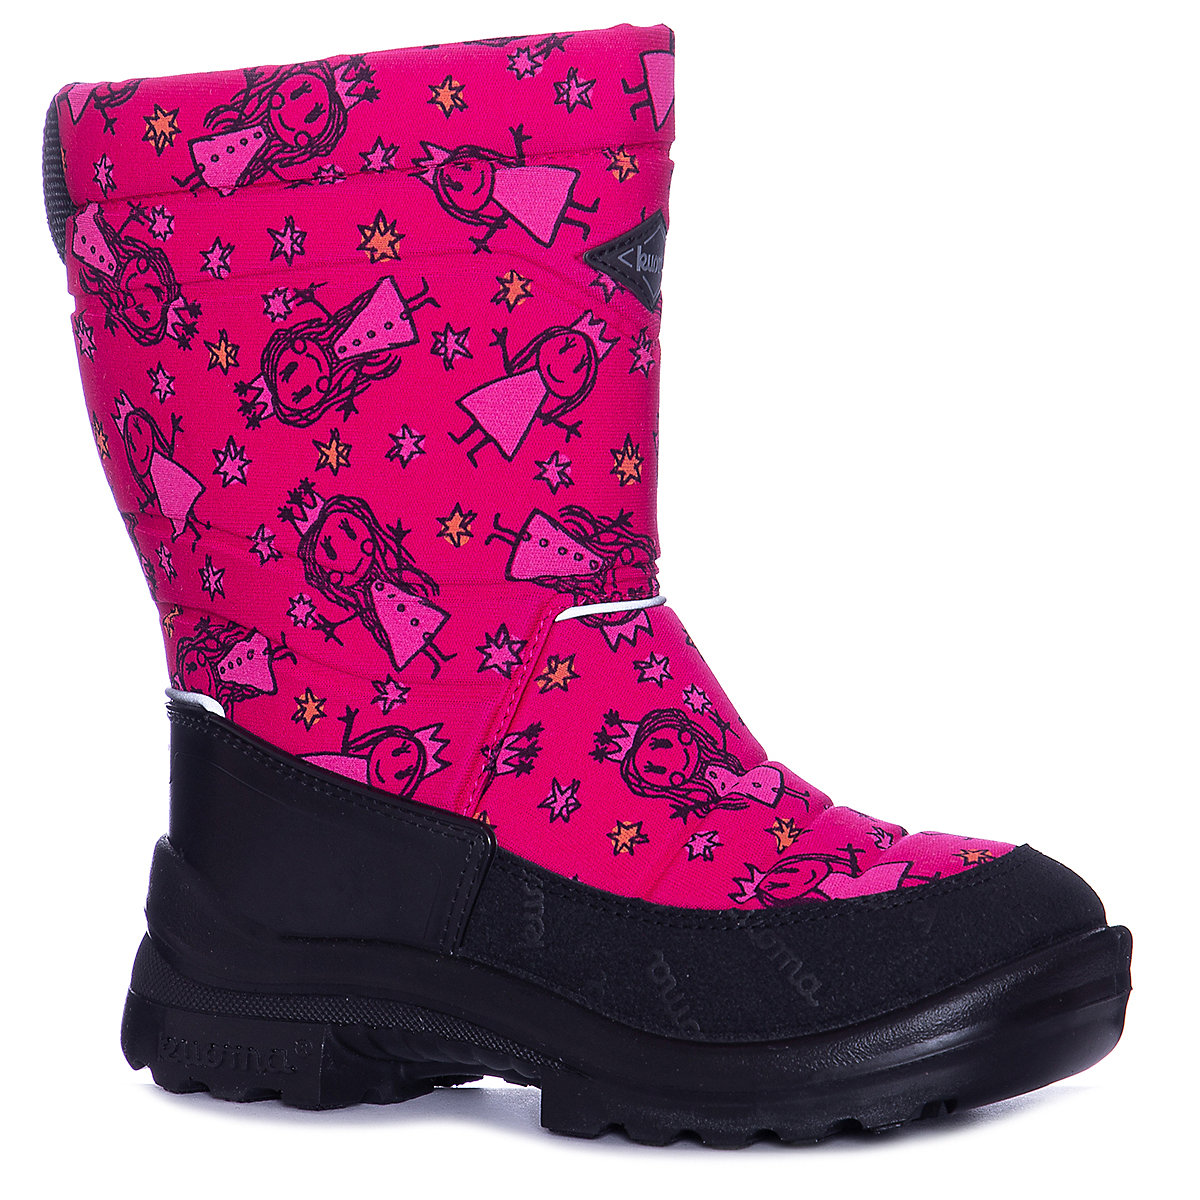 Boots KUOMA For Girls 9491281 Valenki Uggi Winter Baby Kids Children Shoes MTpromo